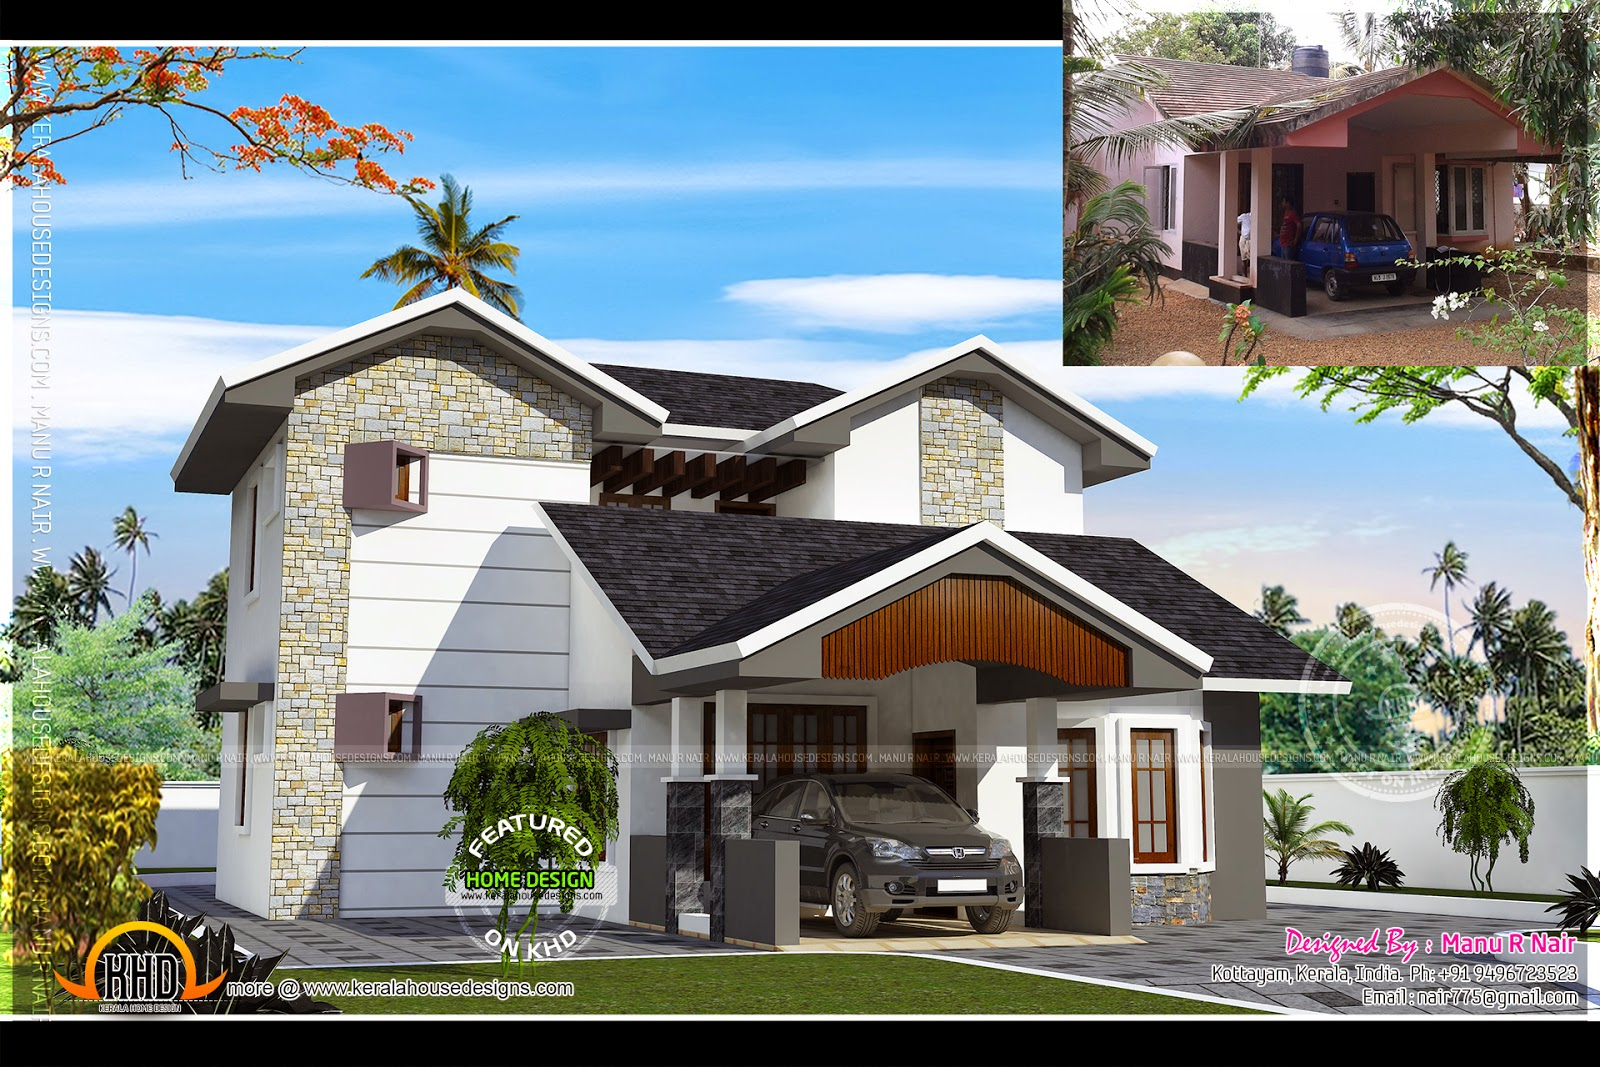 House renovation in ettumanoor kerala home kerala plans for Renovation ideas for small homes in india